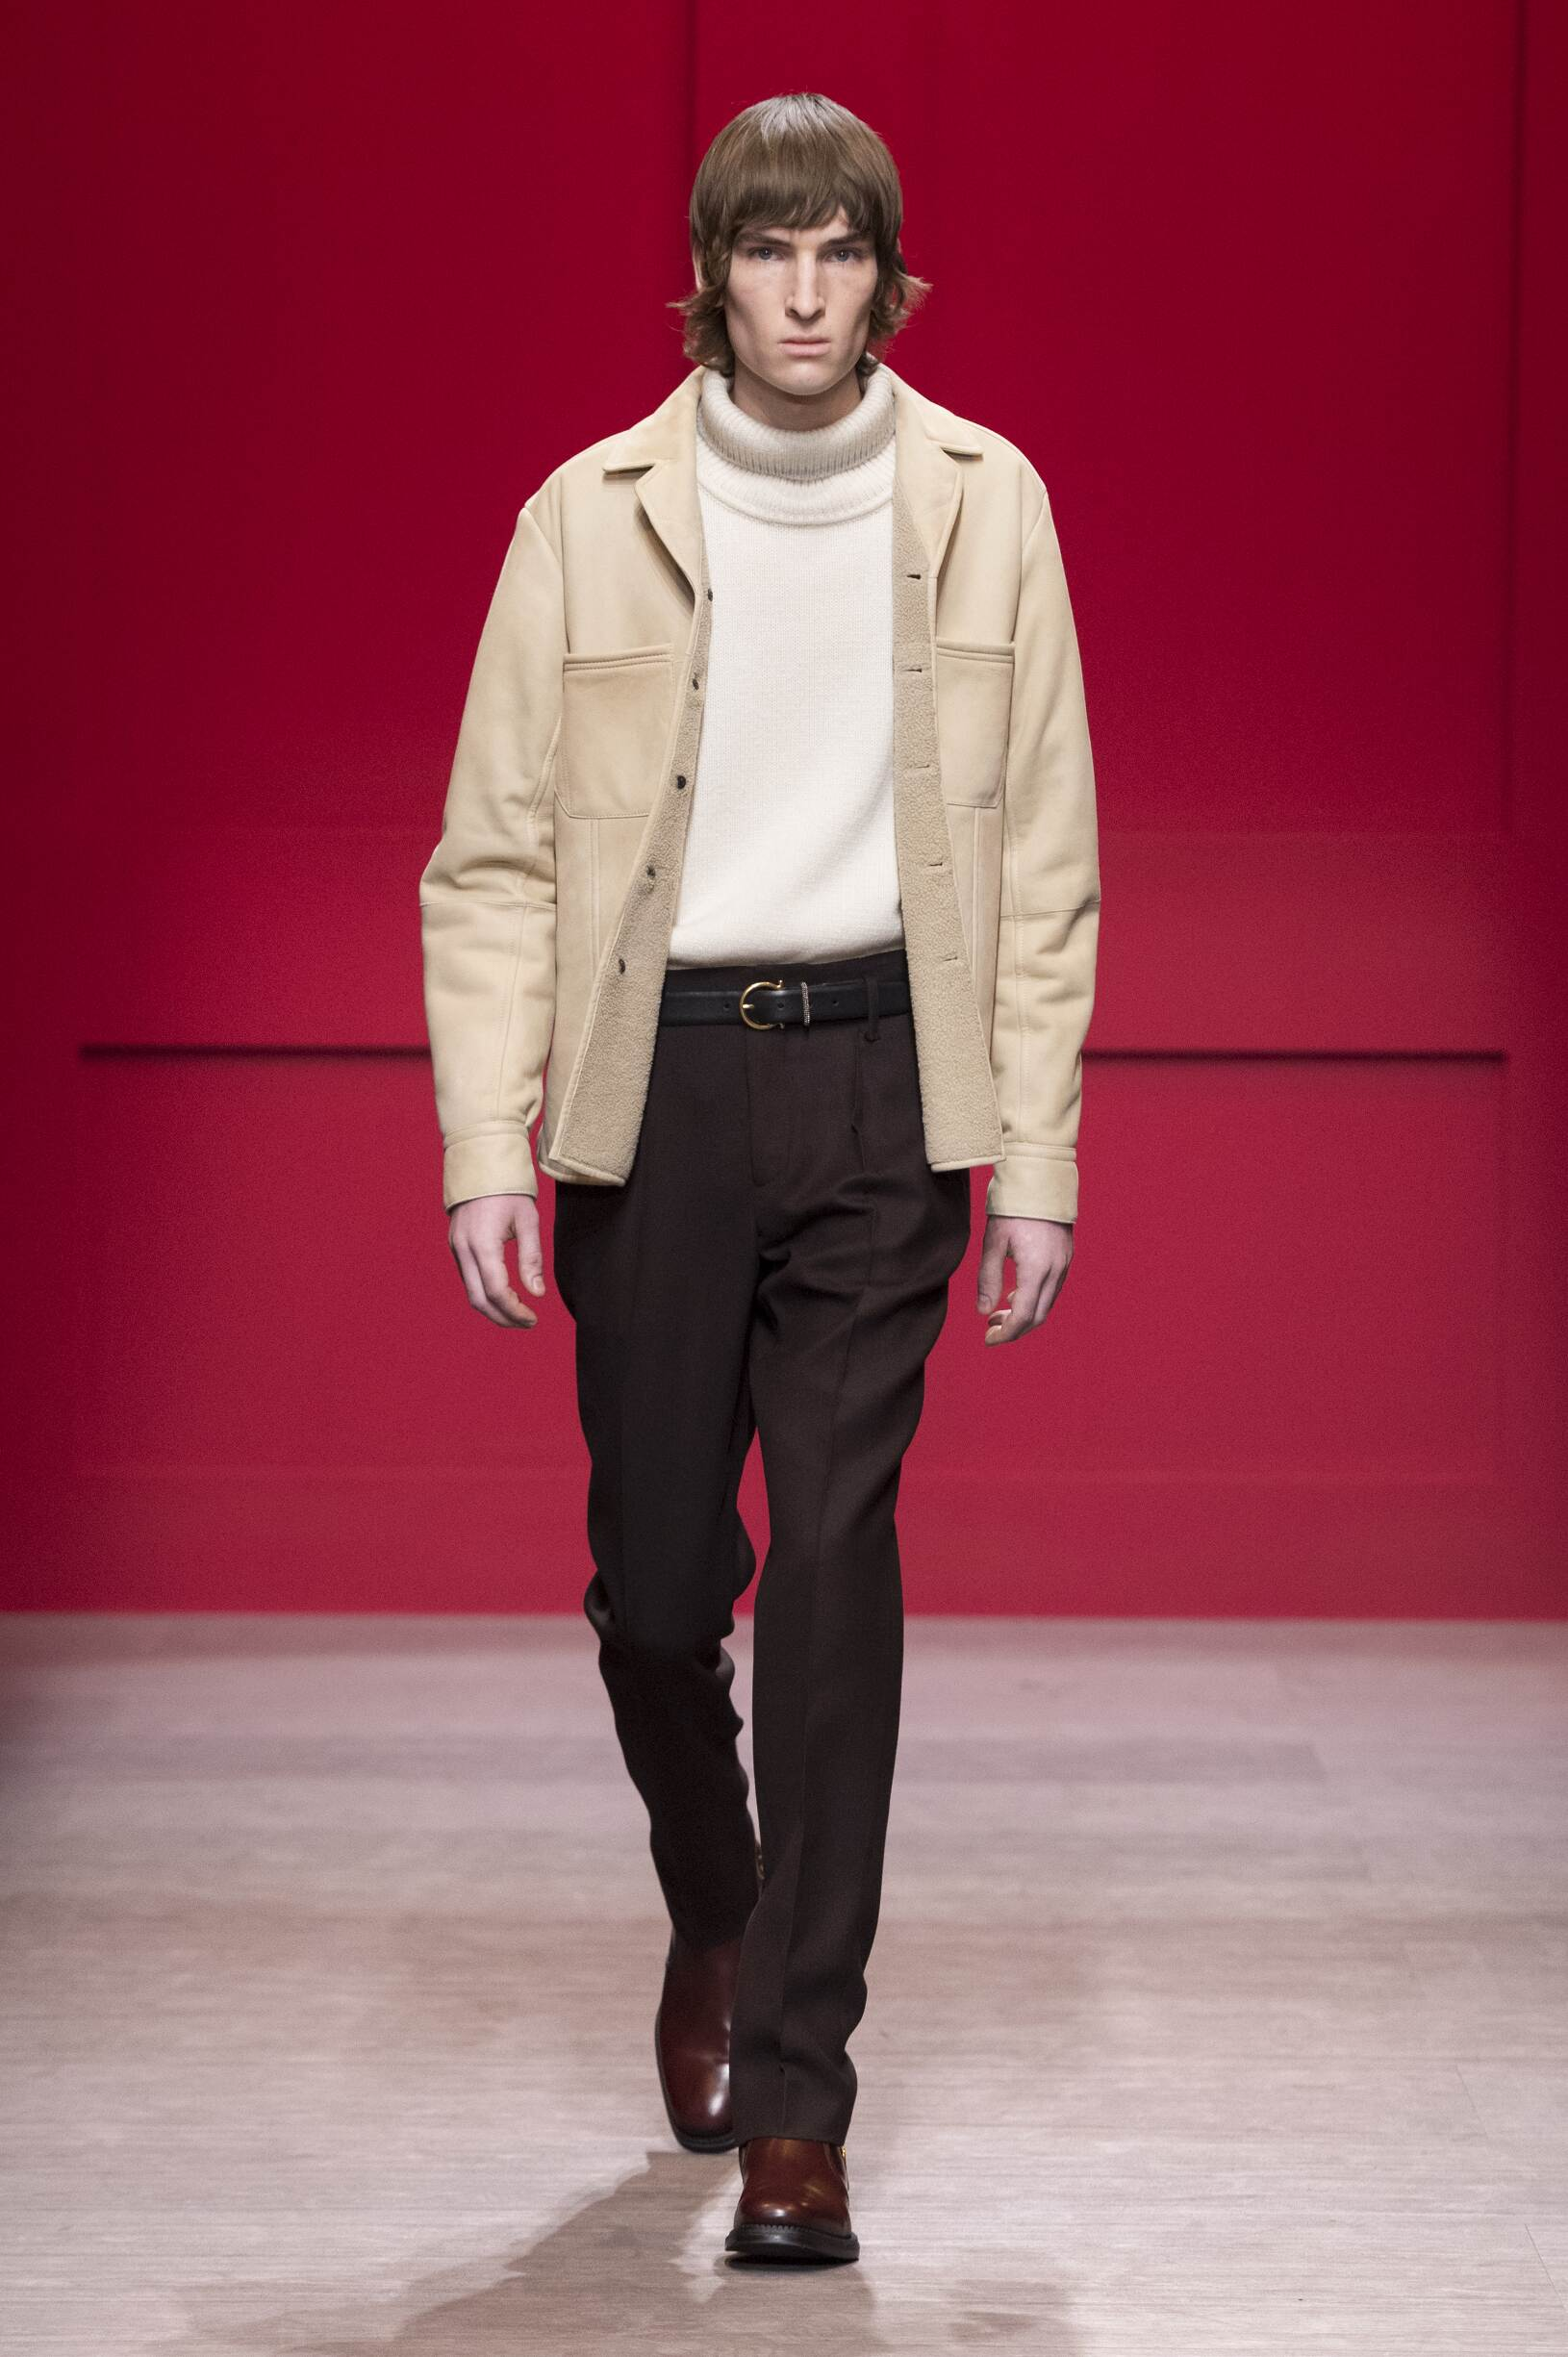 Salvatore Ferragamo Menswear Fashion Show